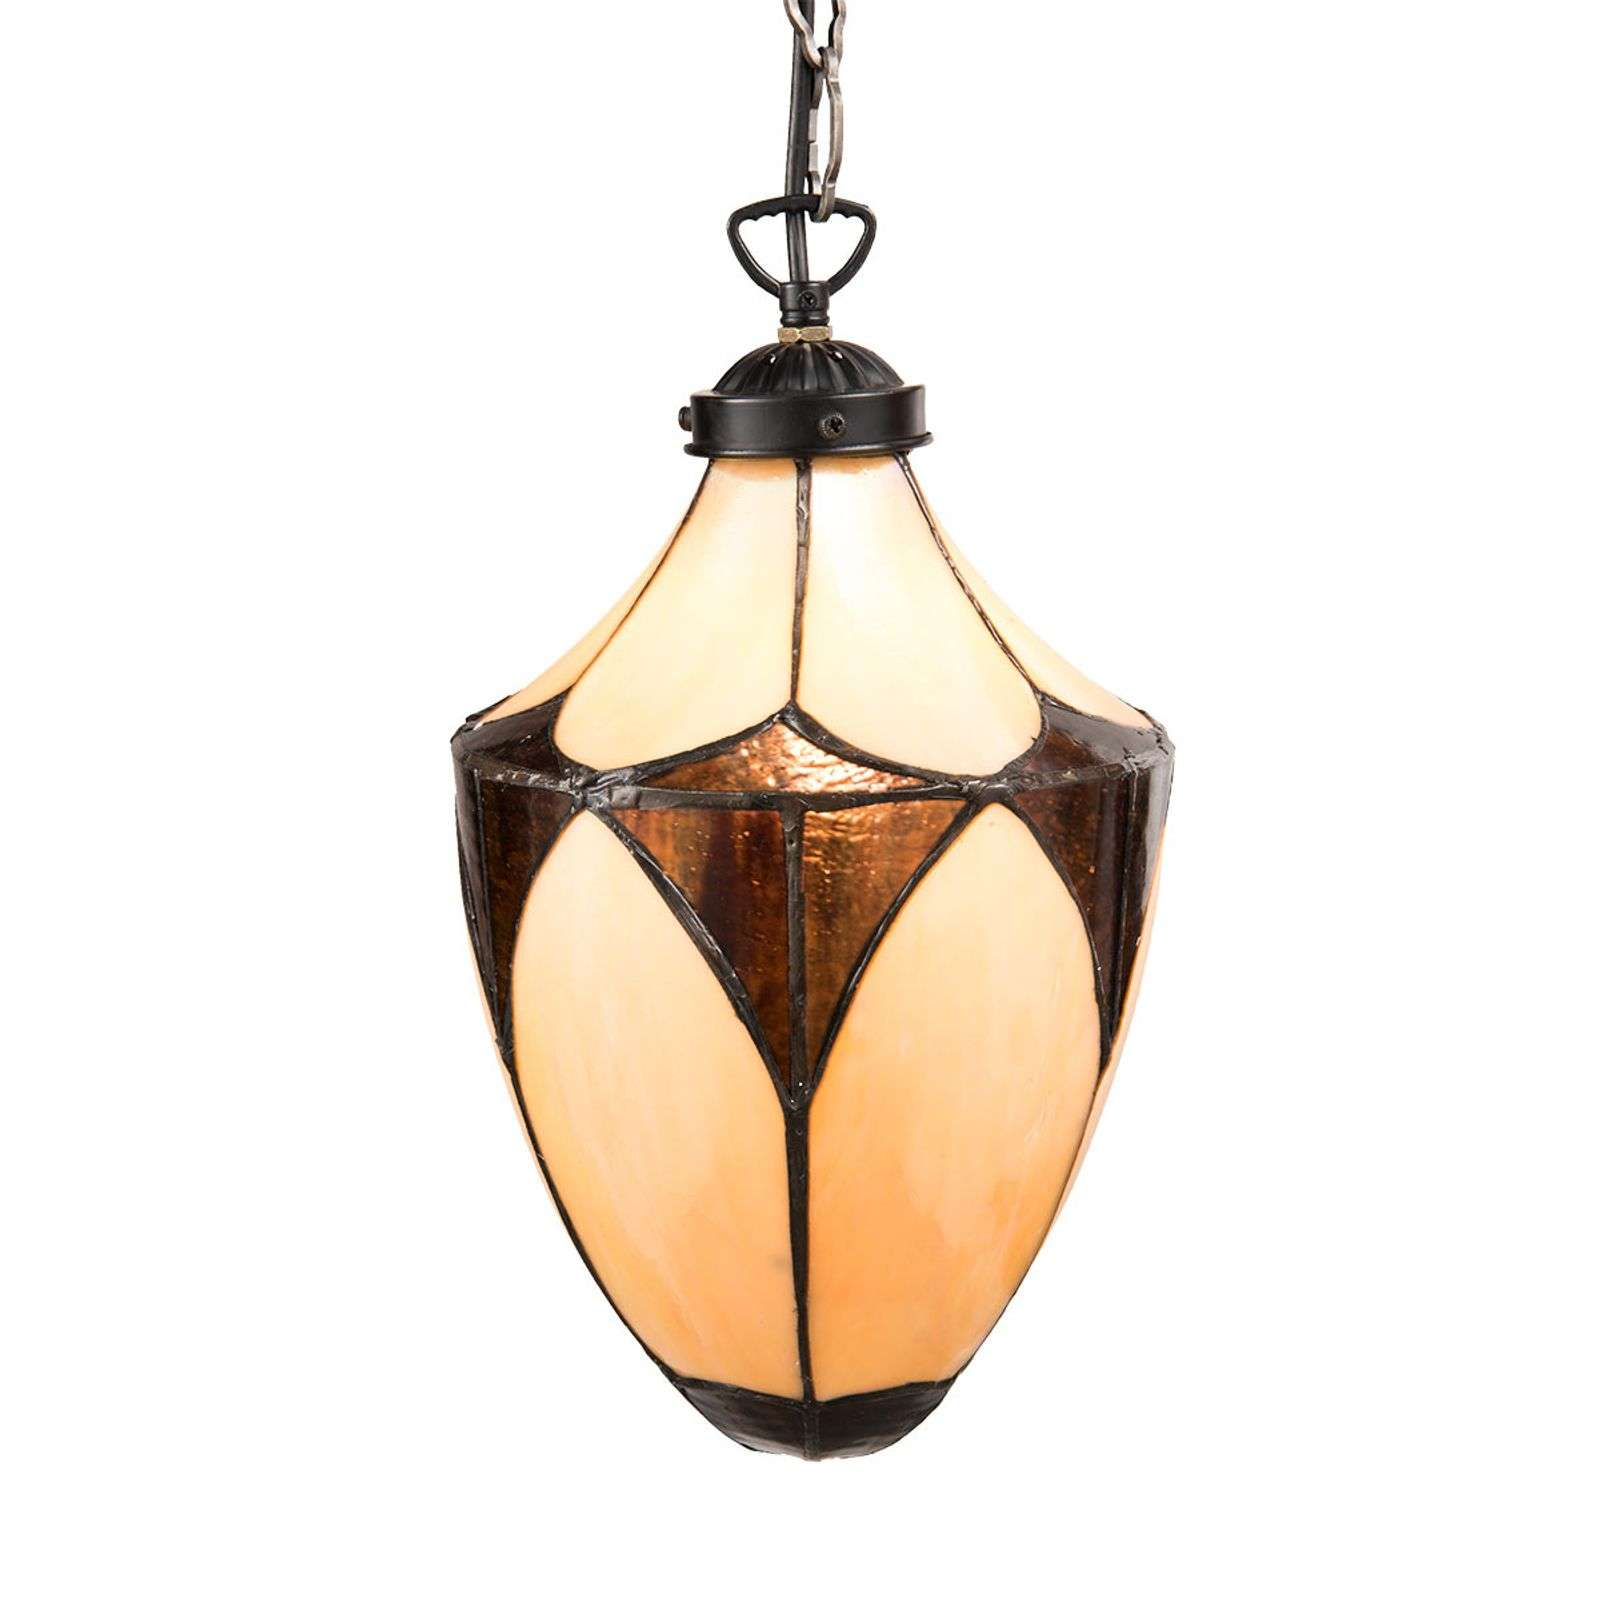 Suspension Art nouveau Olia au design Tiffany